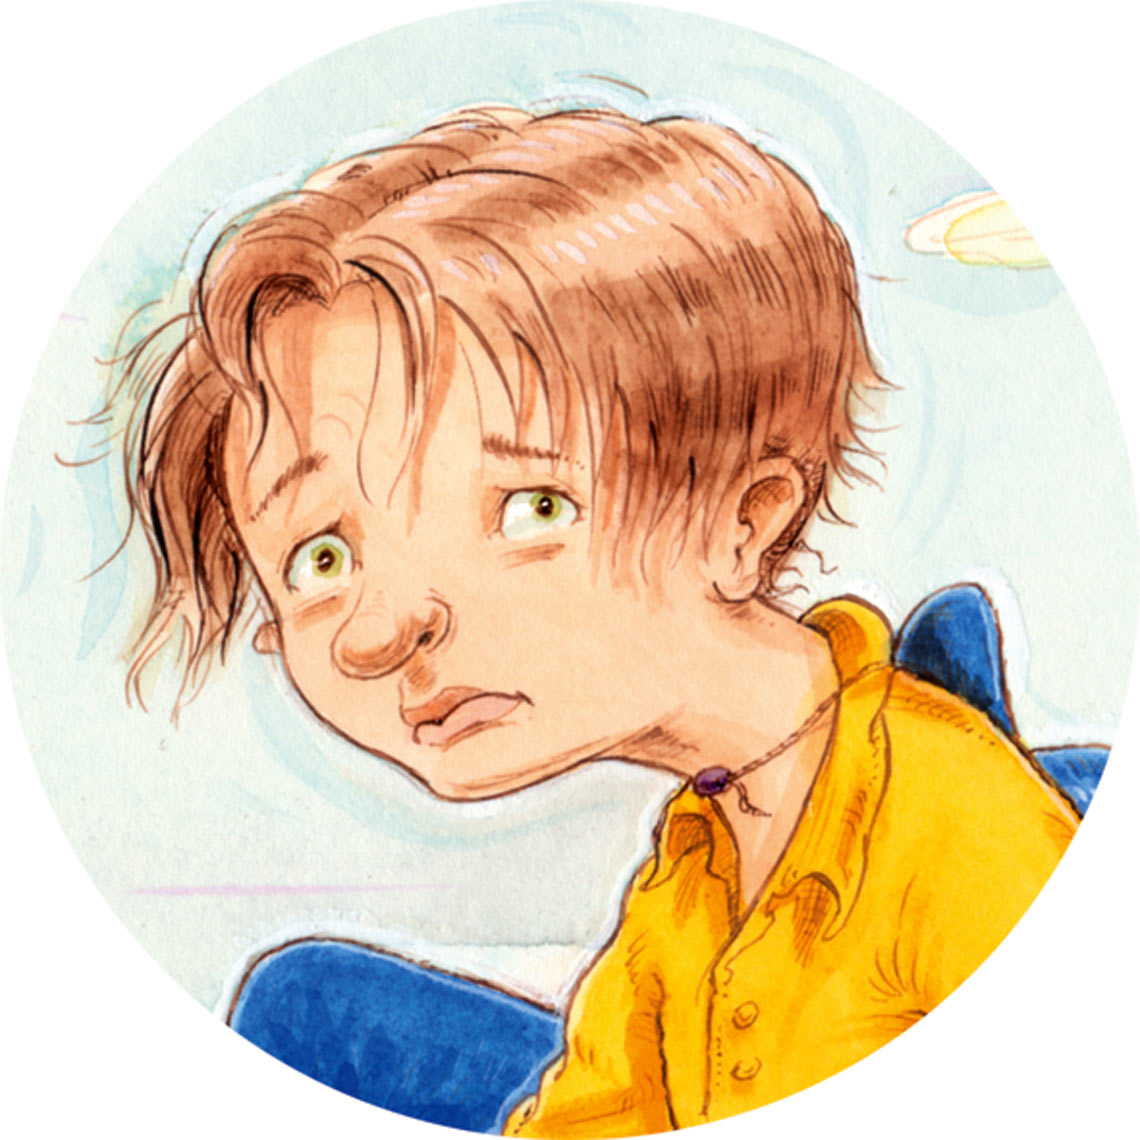 sad boy Childrens Commercial Illustration